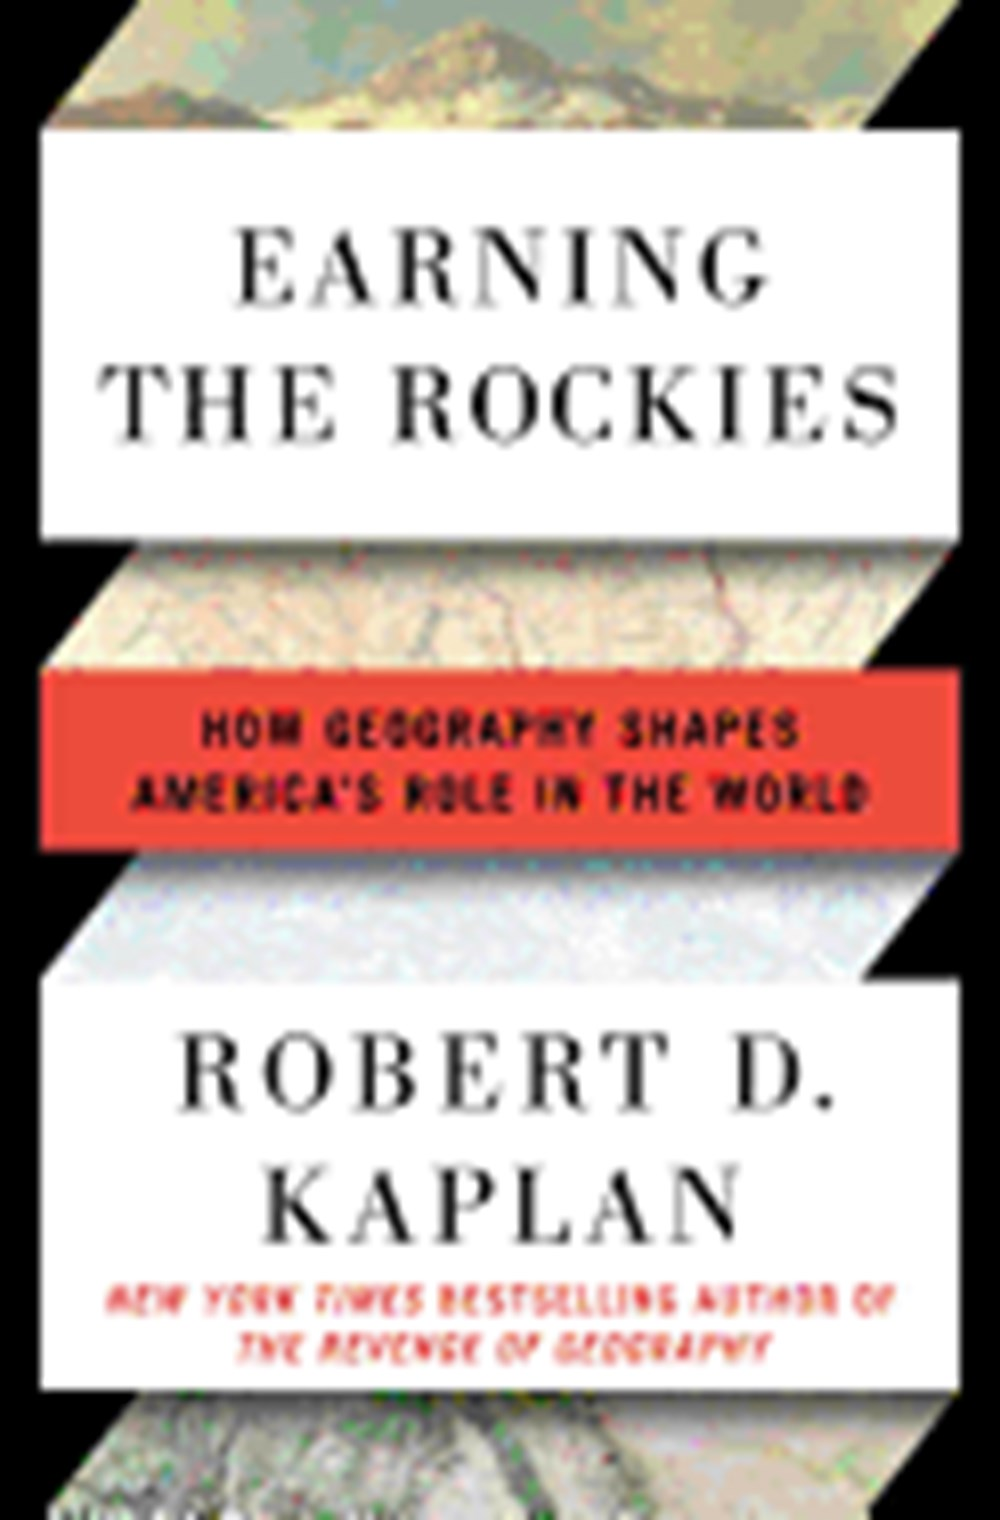 Earning the Rockies How Geography Shapes America's Role in the World